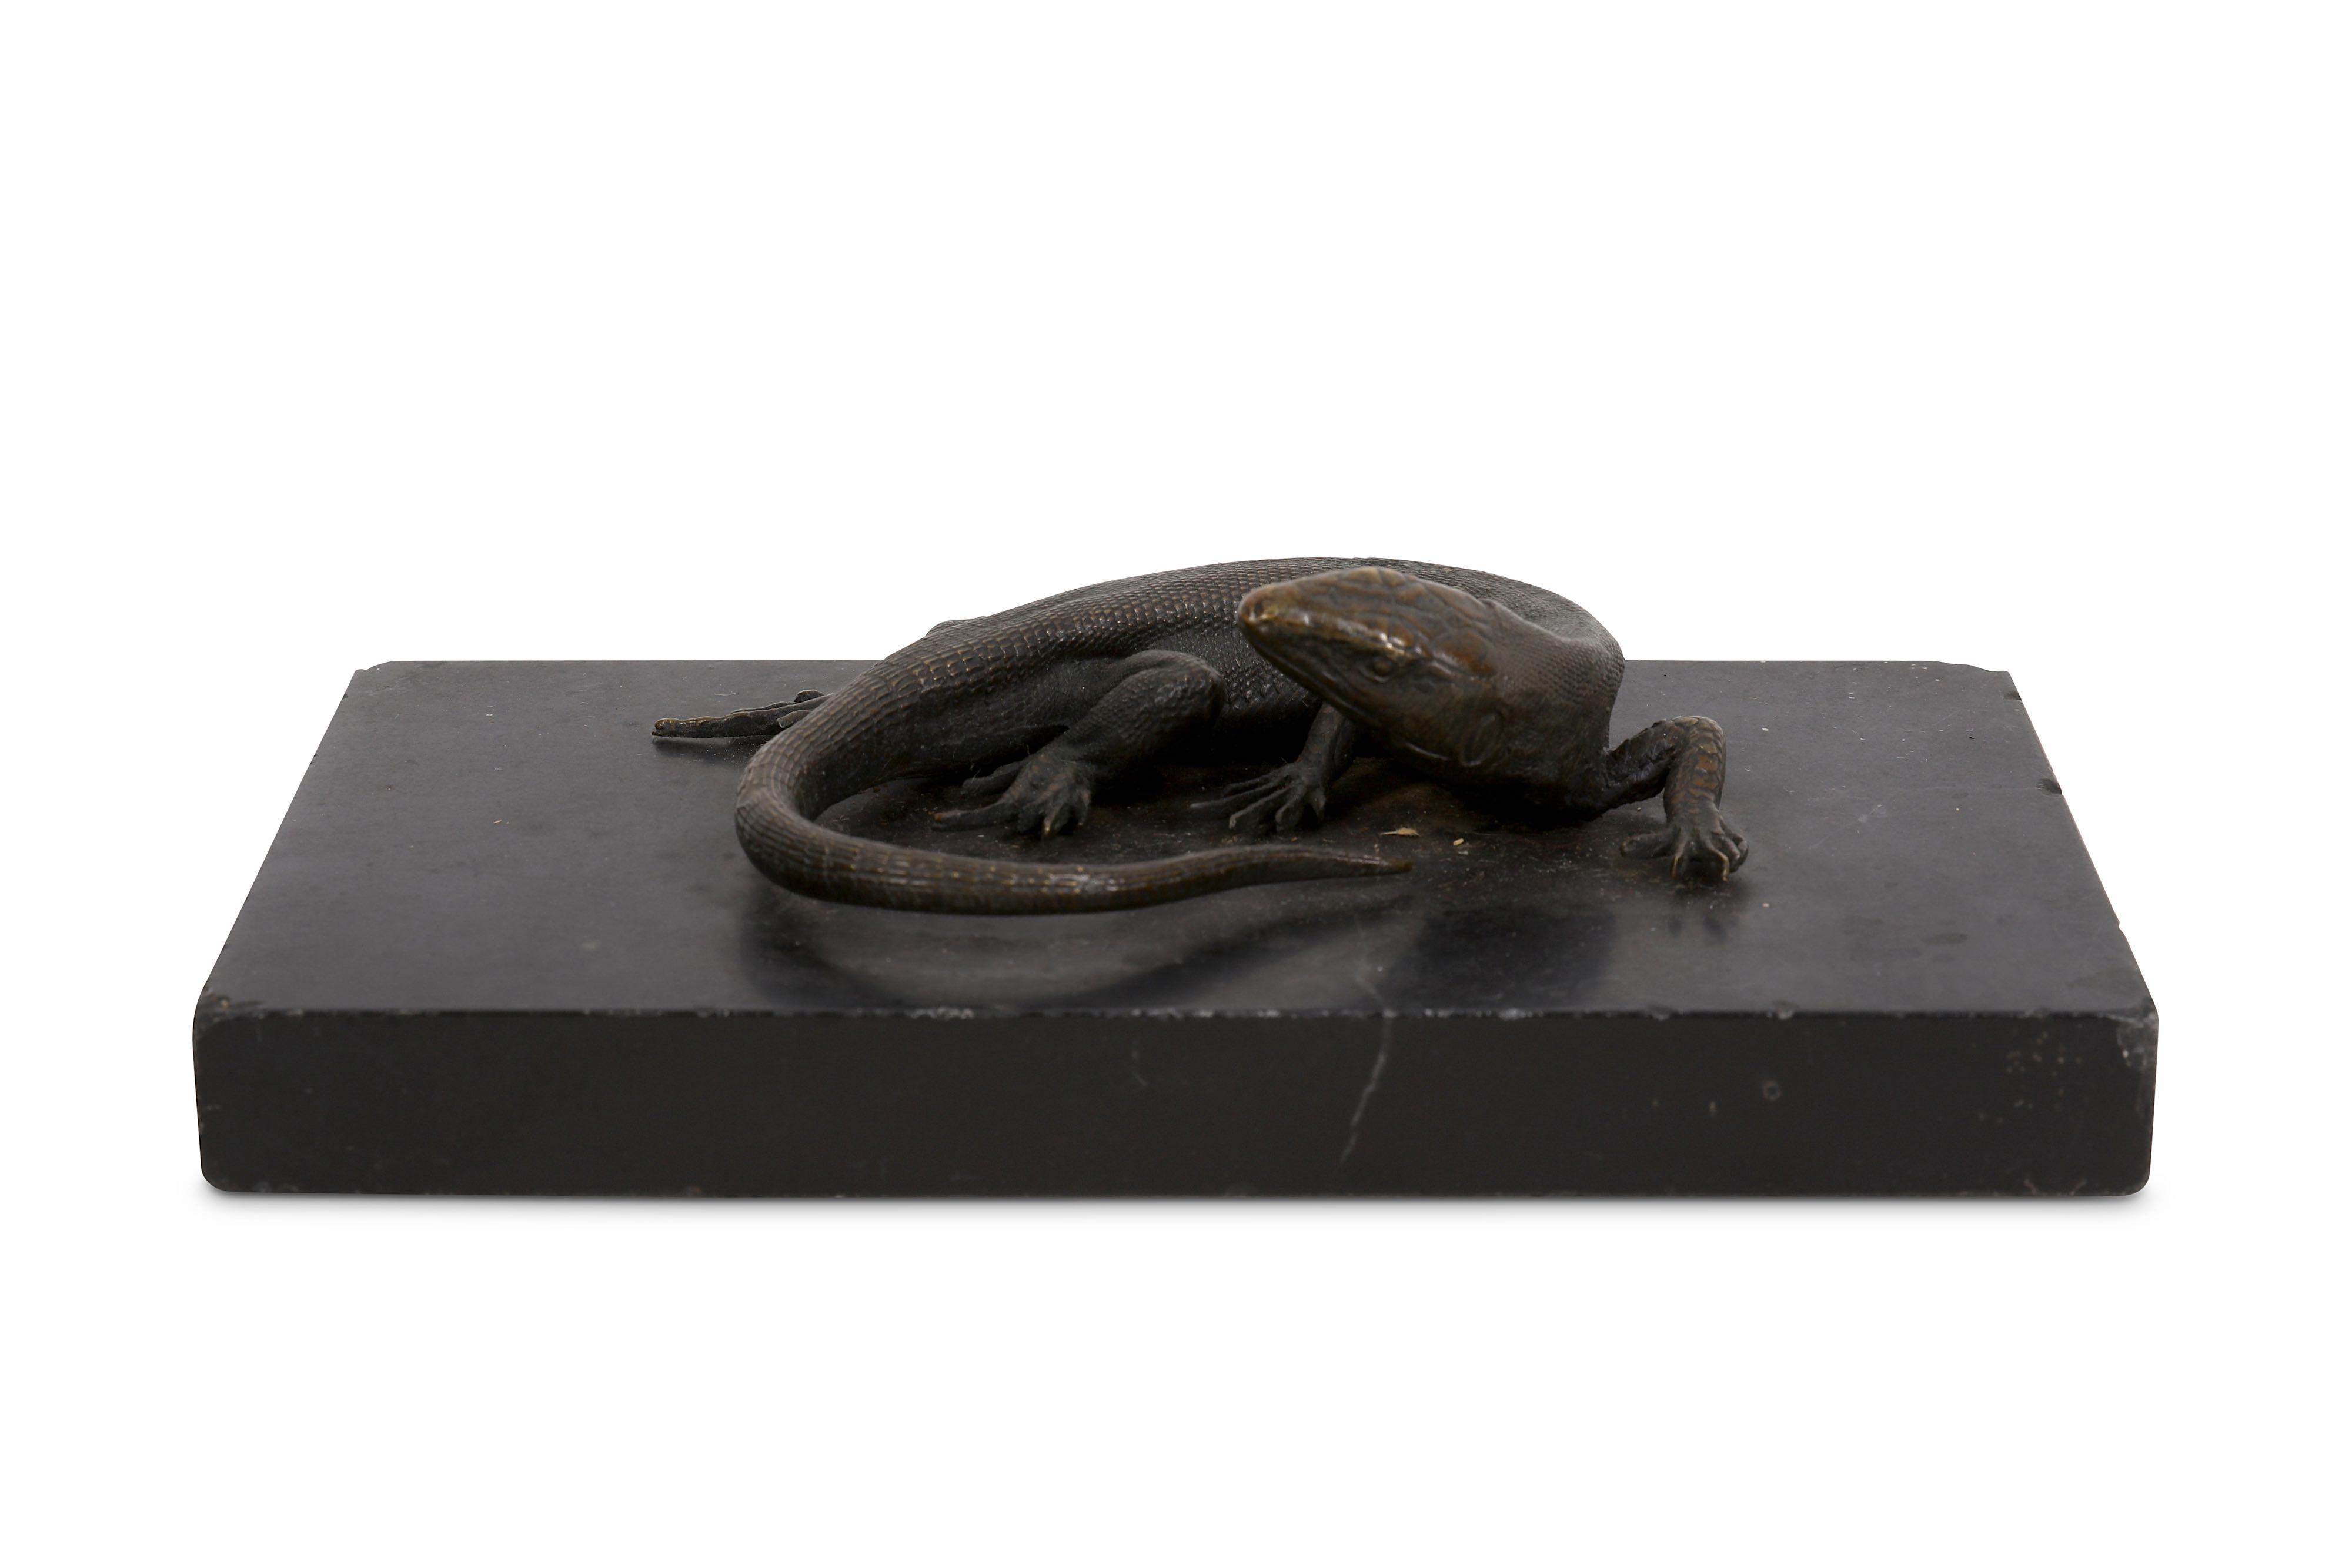 Lot 6 - A 19TH CENTURY BRONZE MODEL OF A LIZARD, POSSIBLY A LIFE-CAST